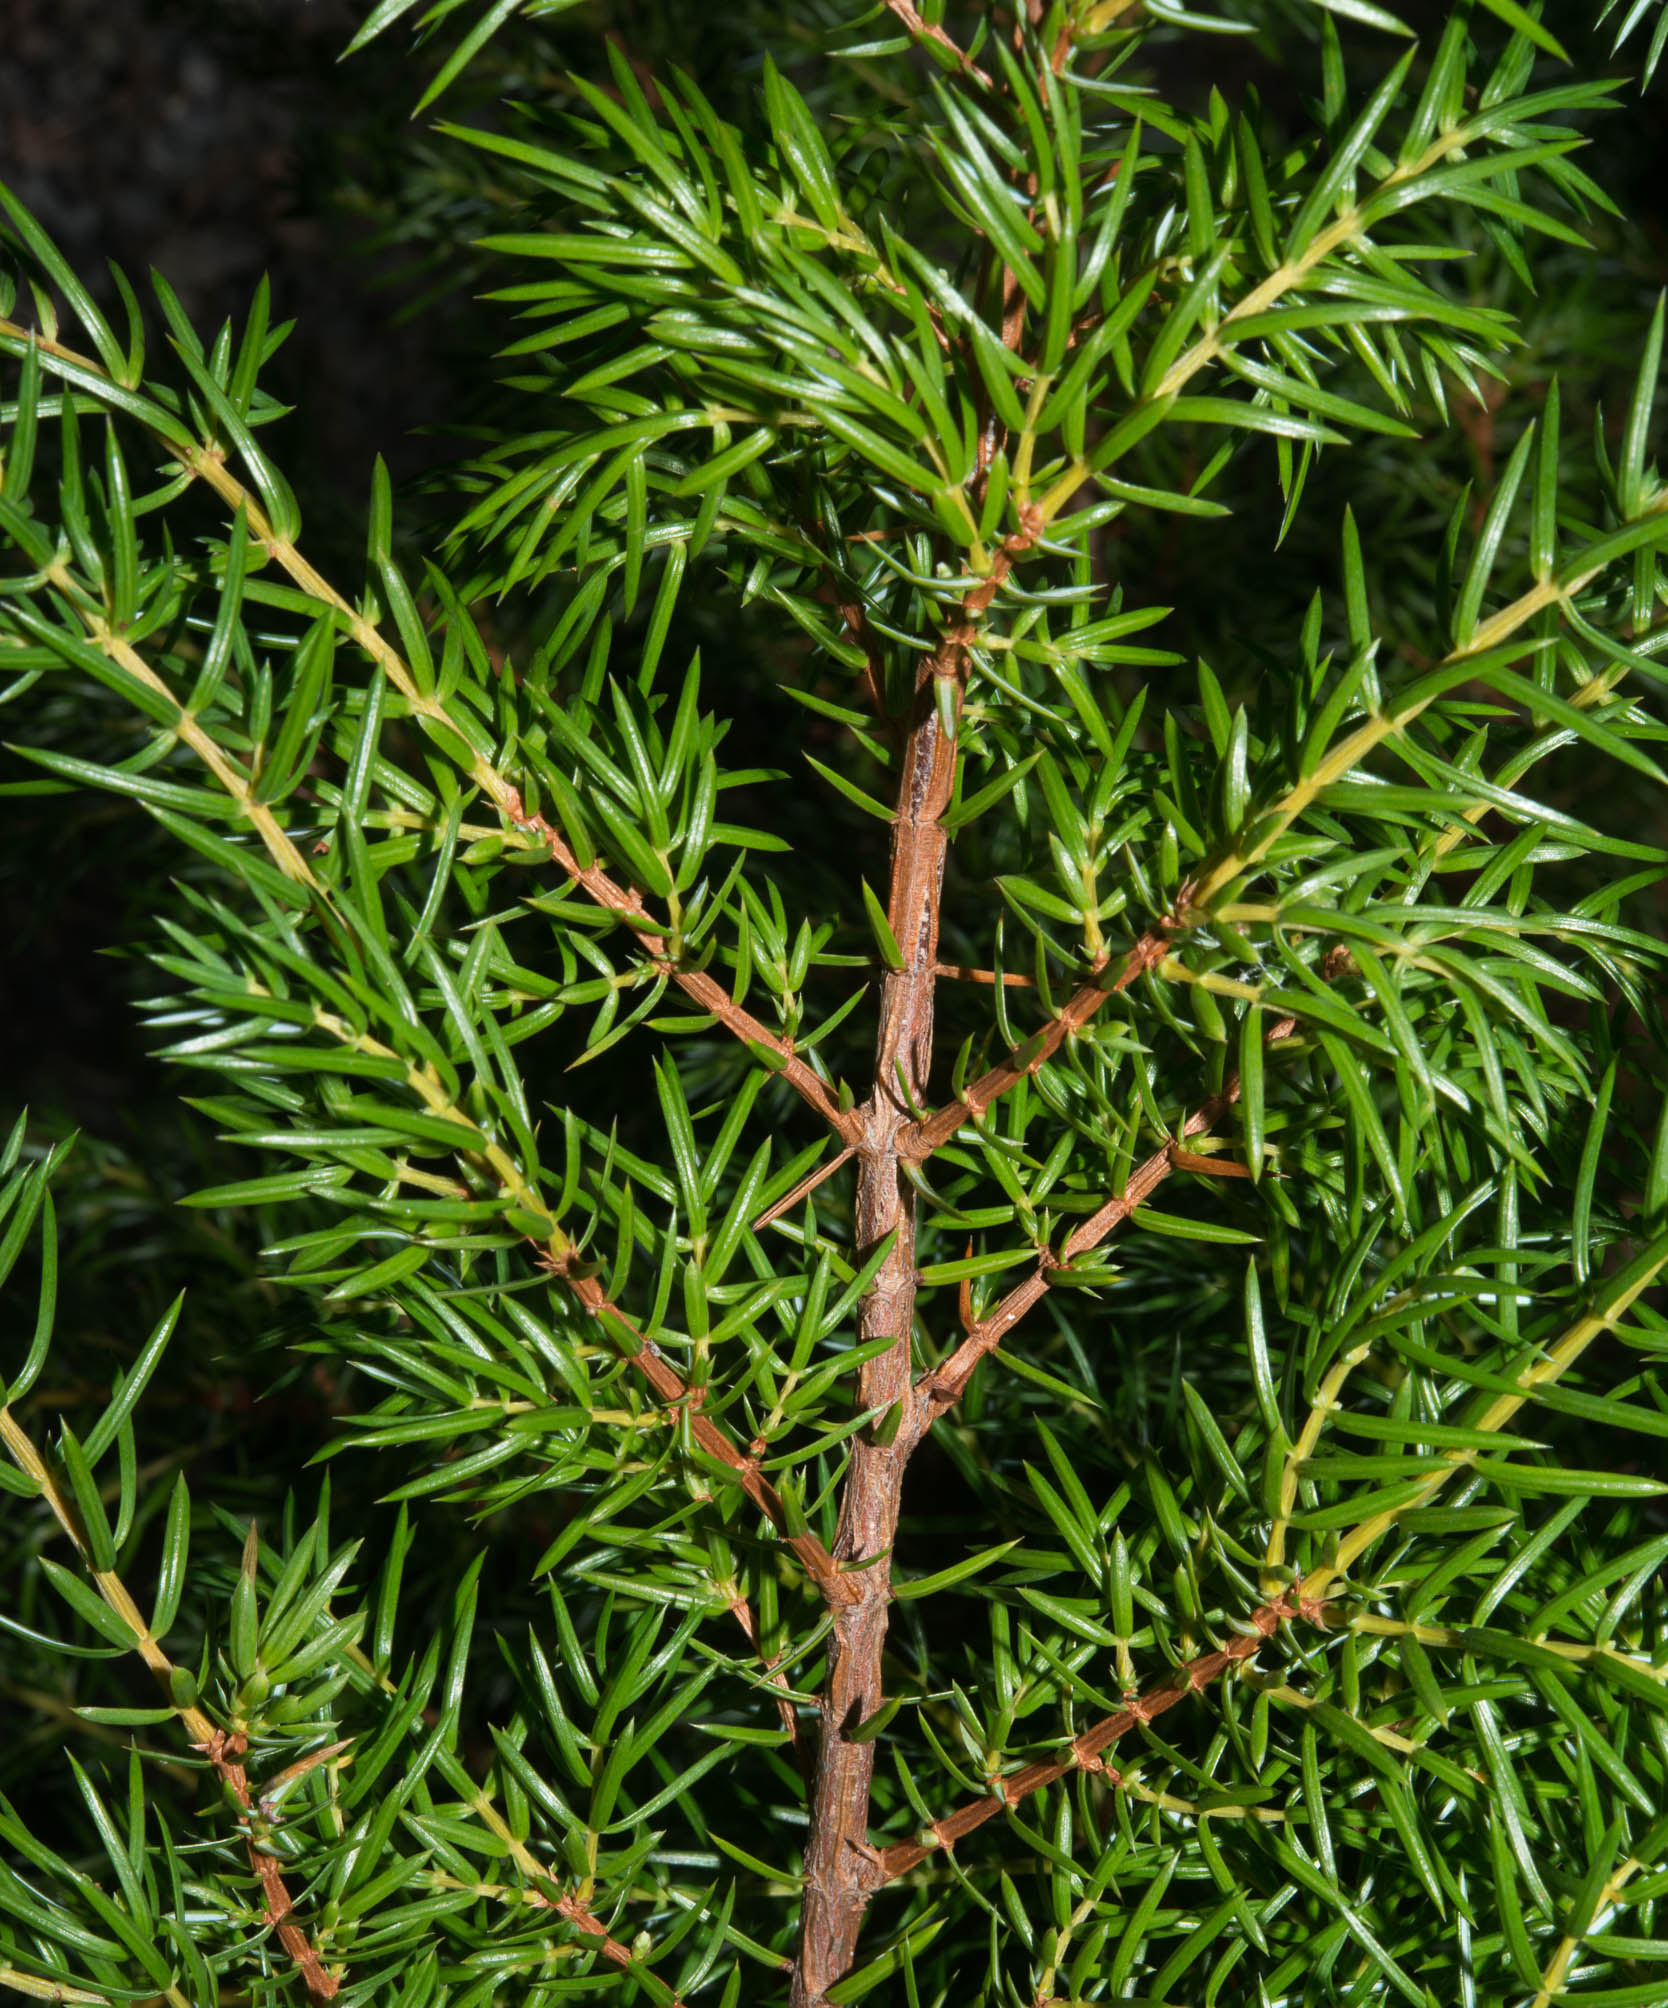 Ground Juniper (Juniperus communis)